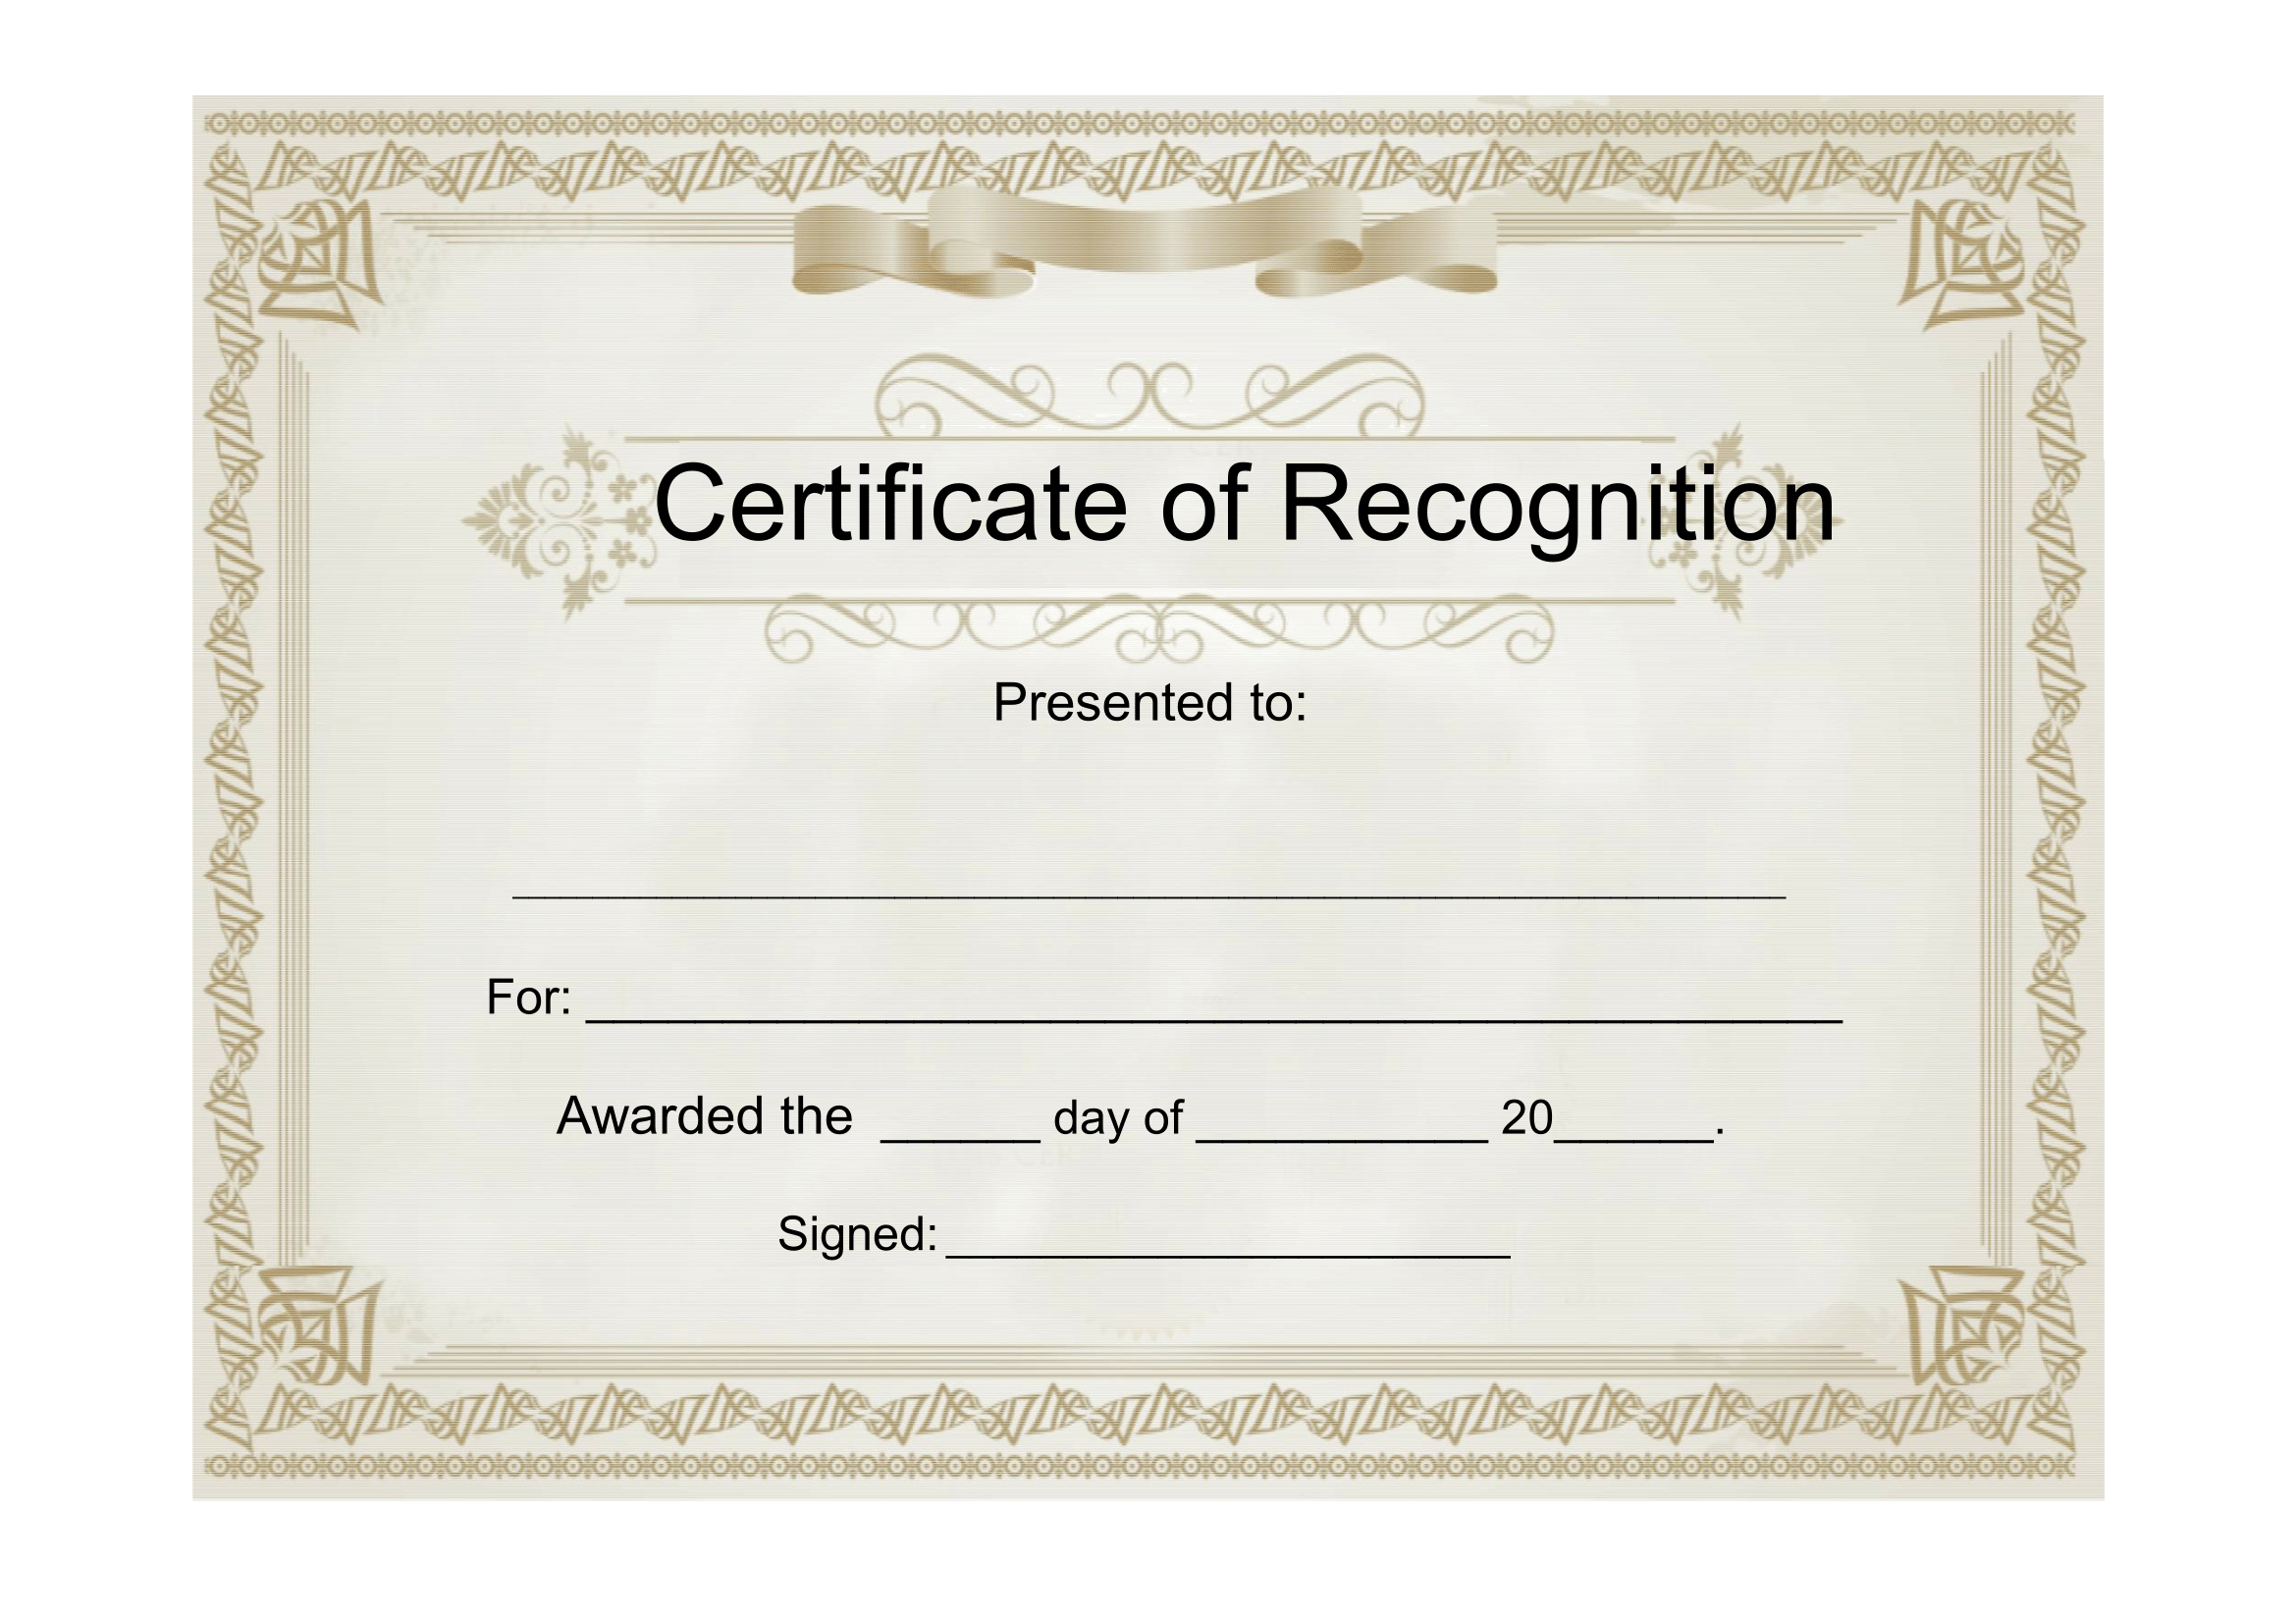 Sample Certificate of Recognition - FREE Download Template